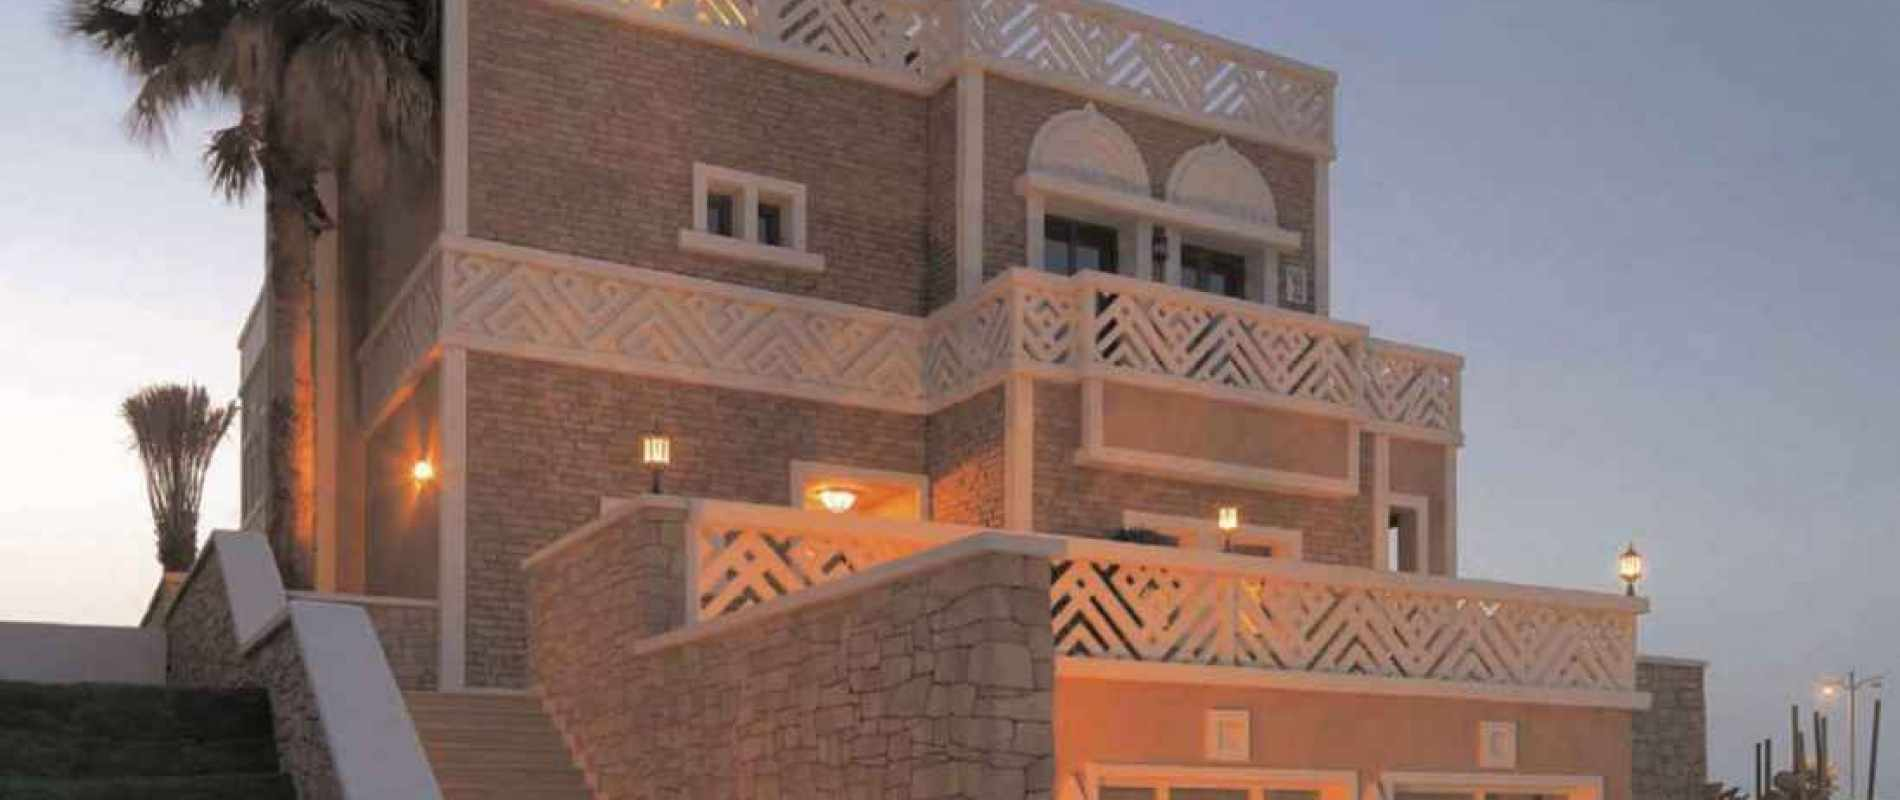 Luxury Property Dubai  - Property for sale in Balqis Residence Palm Jumeirah